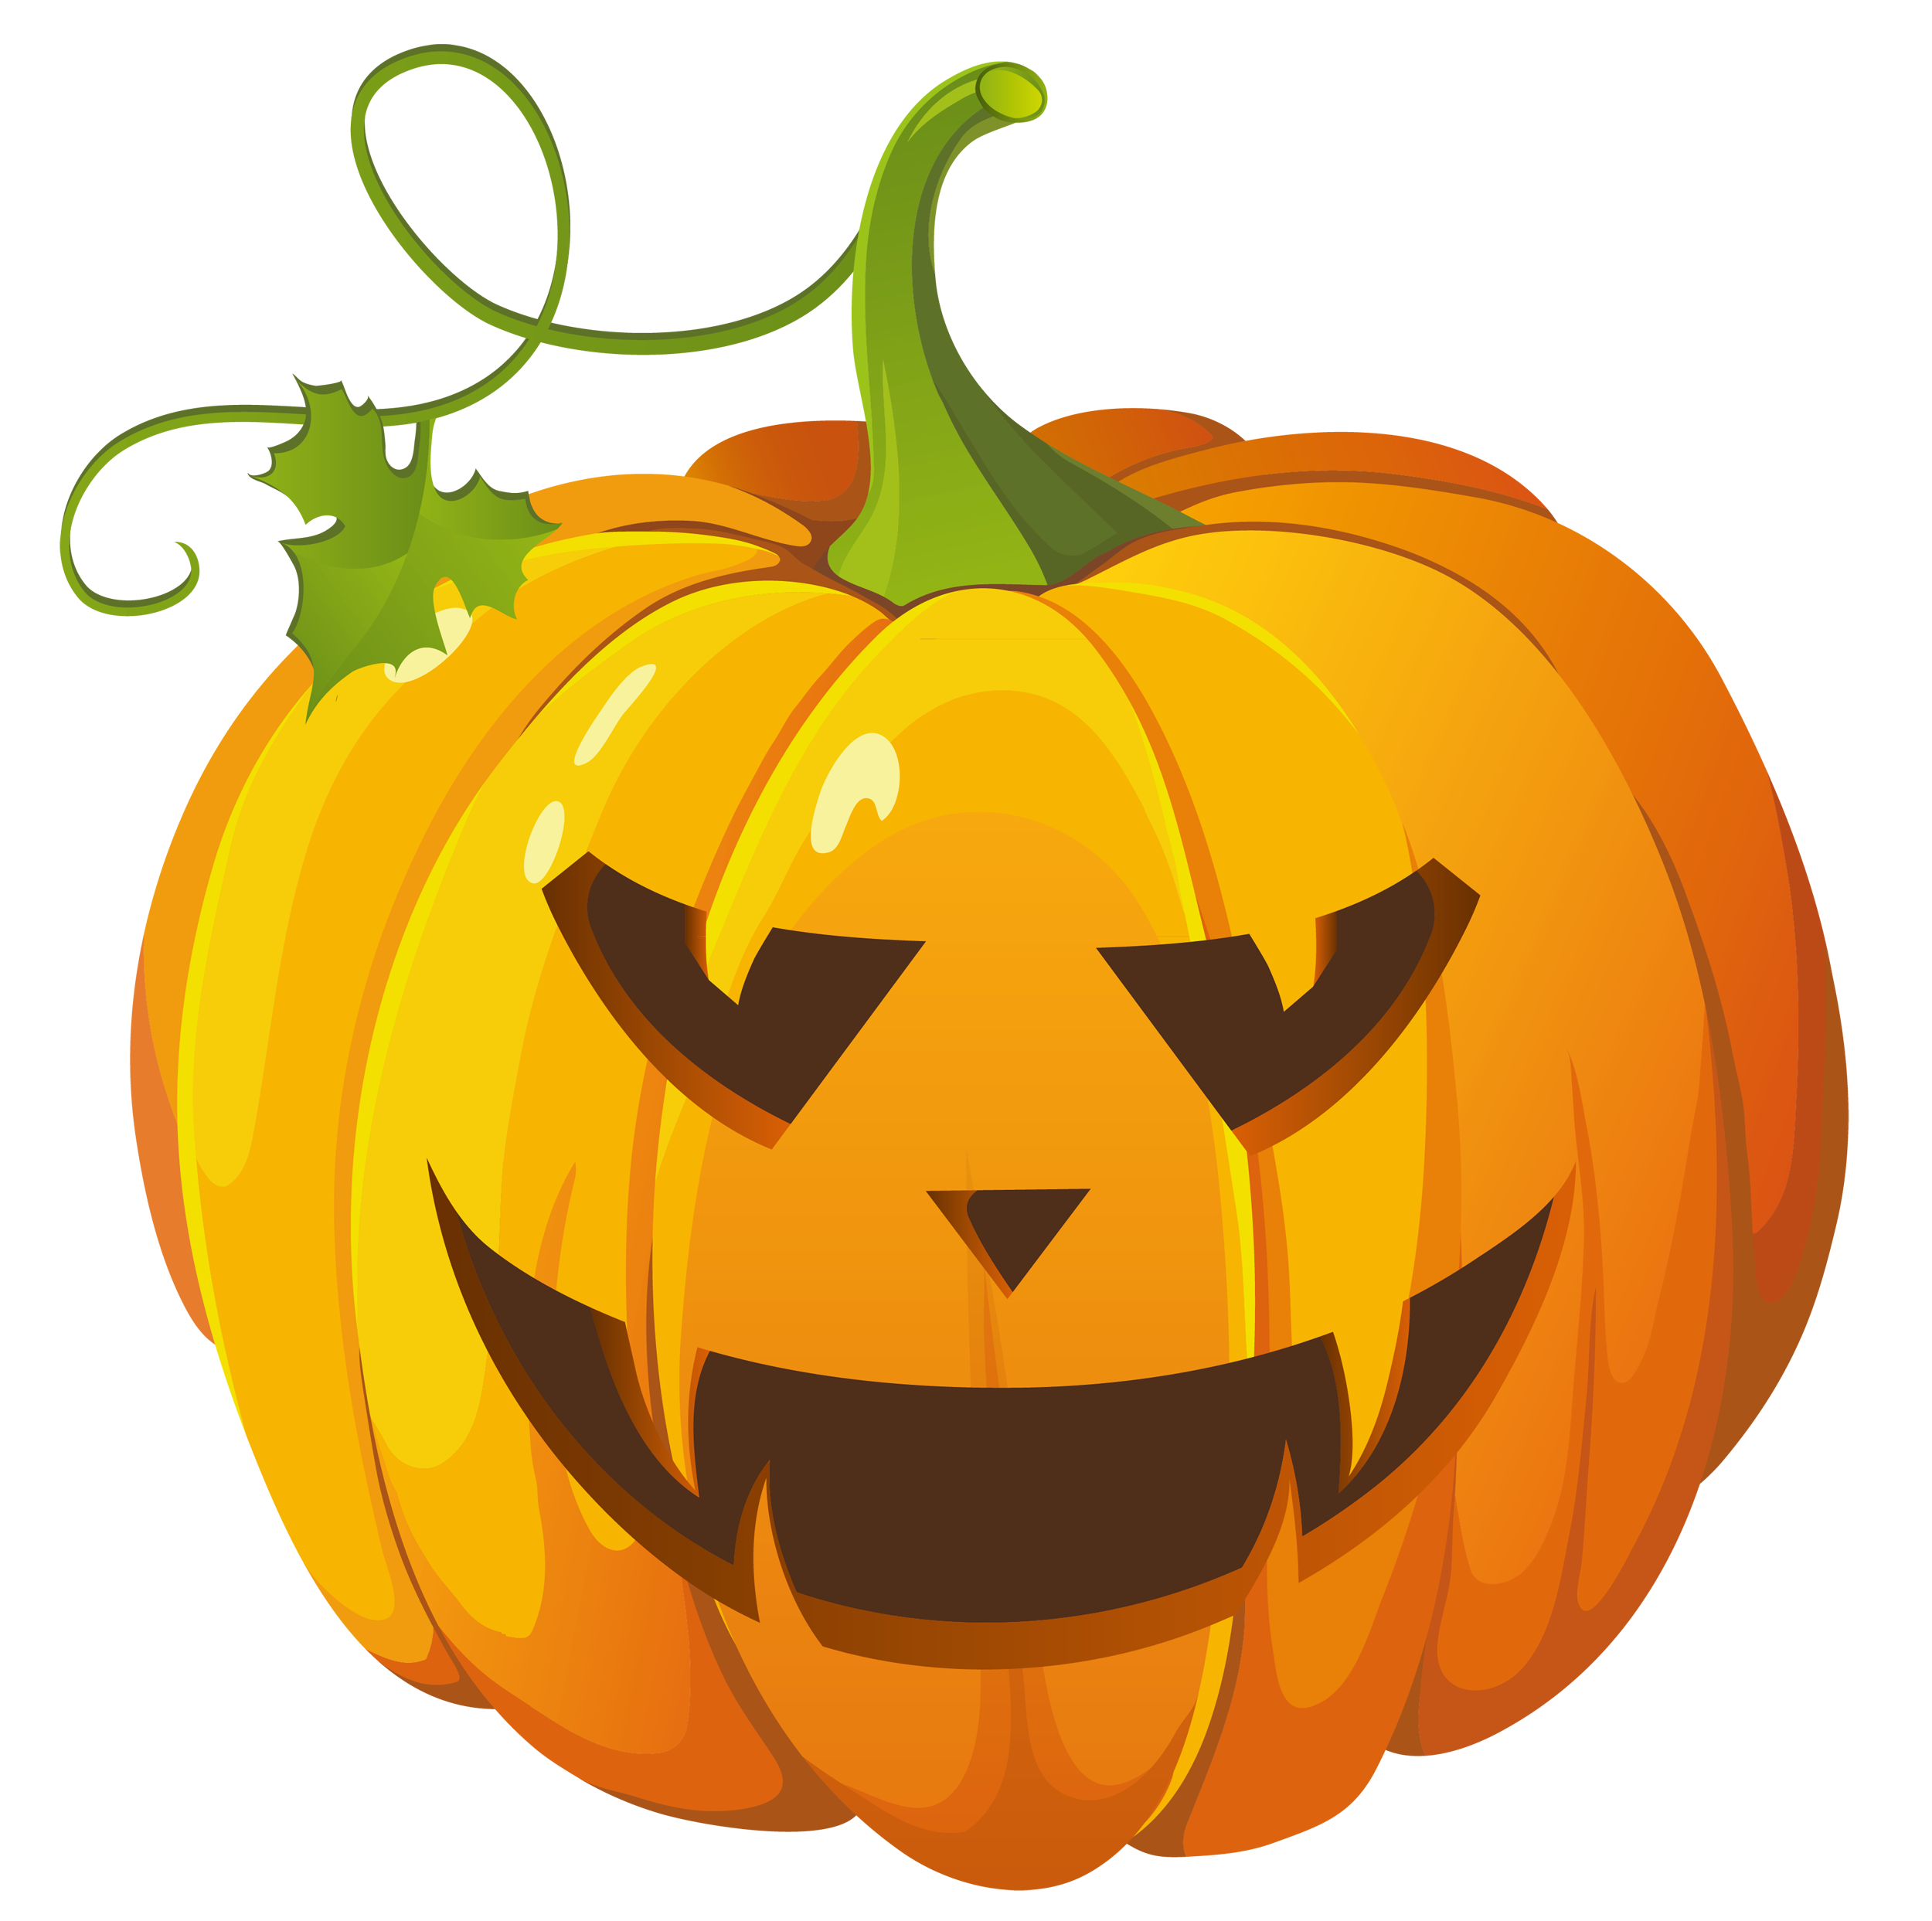 Pumpkin clip transparent background. Collection of free hollowing